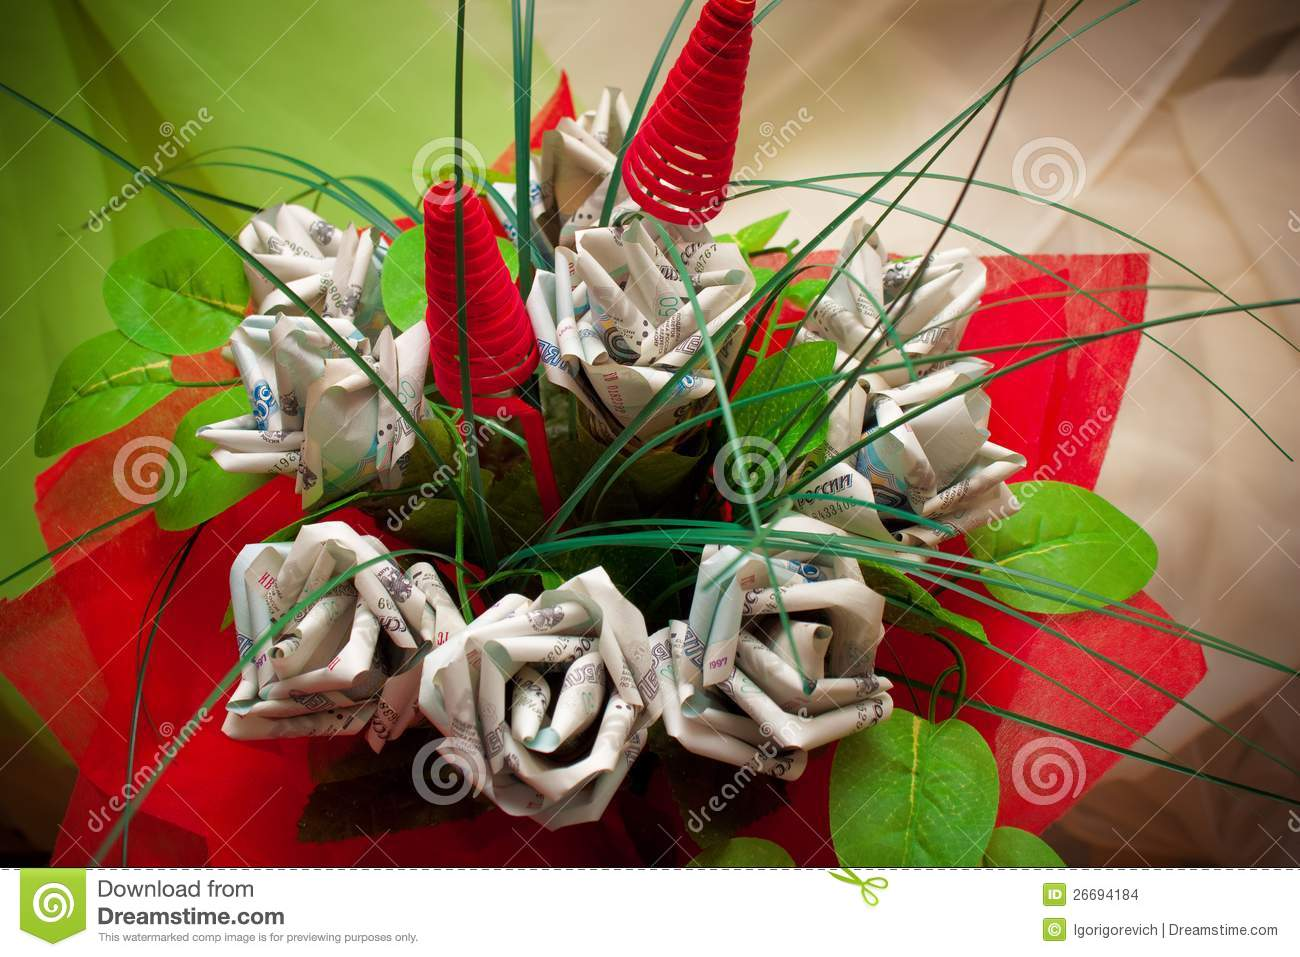 Money flowers stock photo. Image of banknotes, cash, financial ...